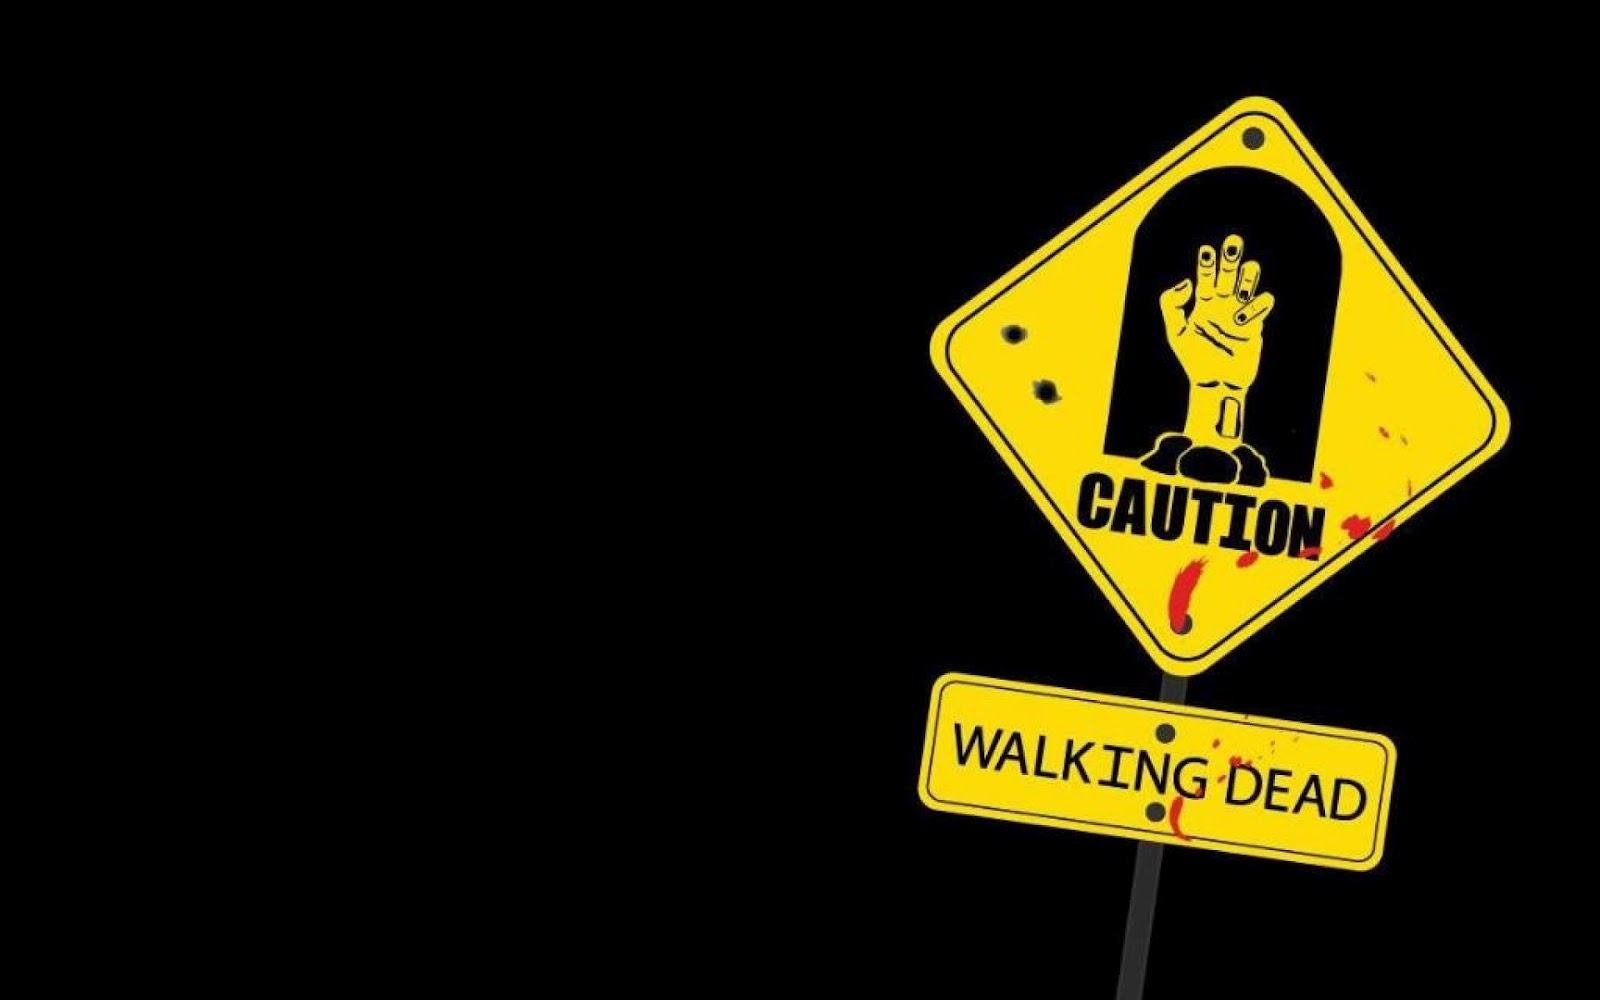 Walking Dead Wallpaper For Android: Wallpapers HD: Wallpapers De Zombies 1920x1080 HD Variados